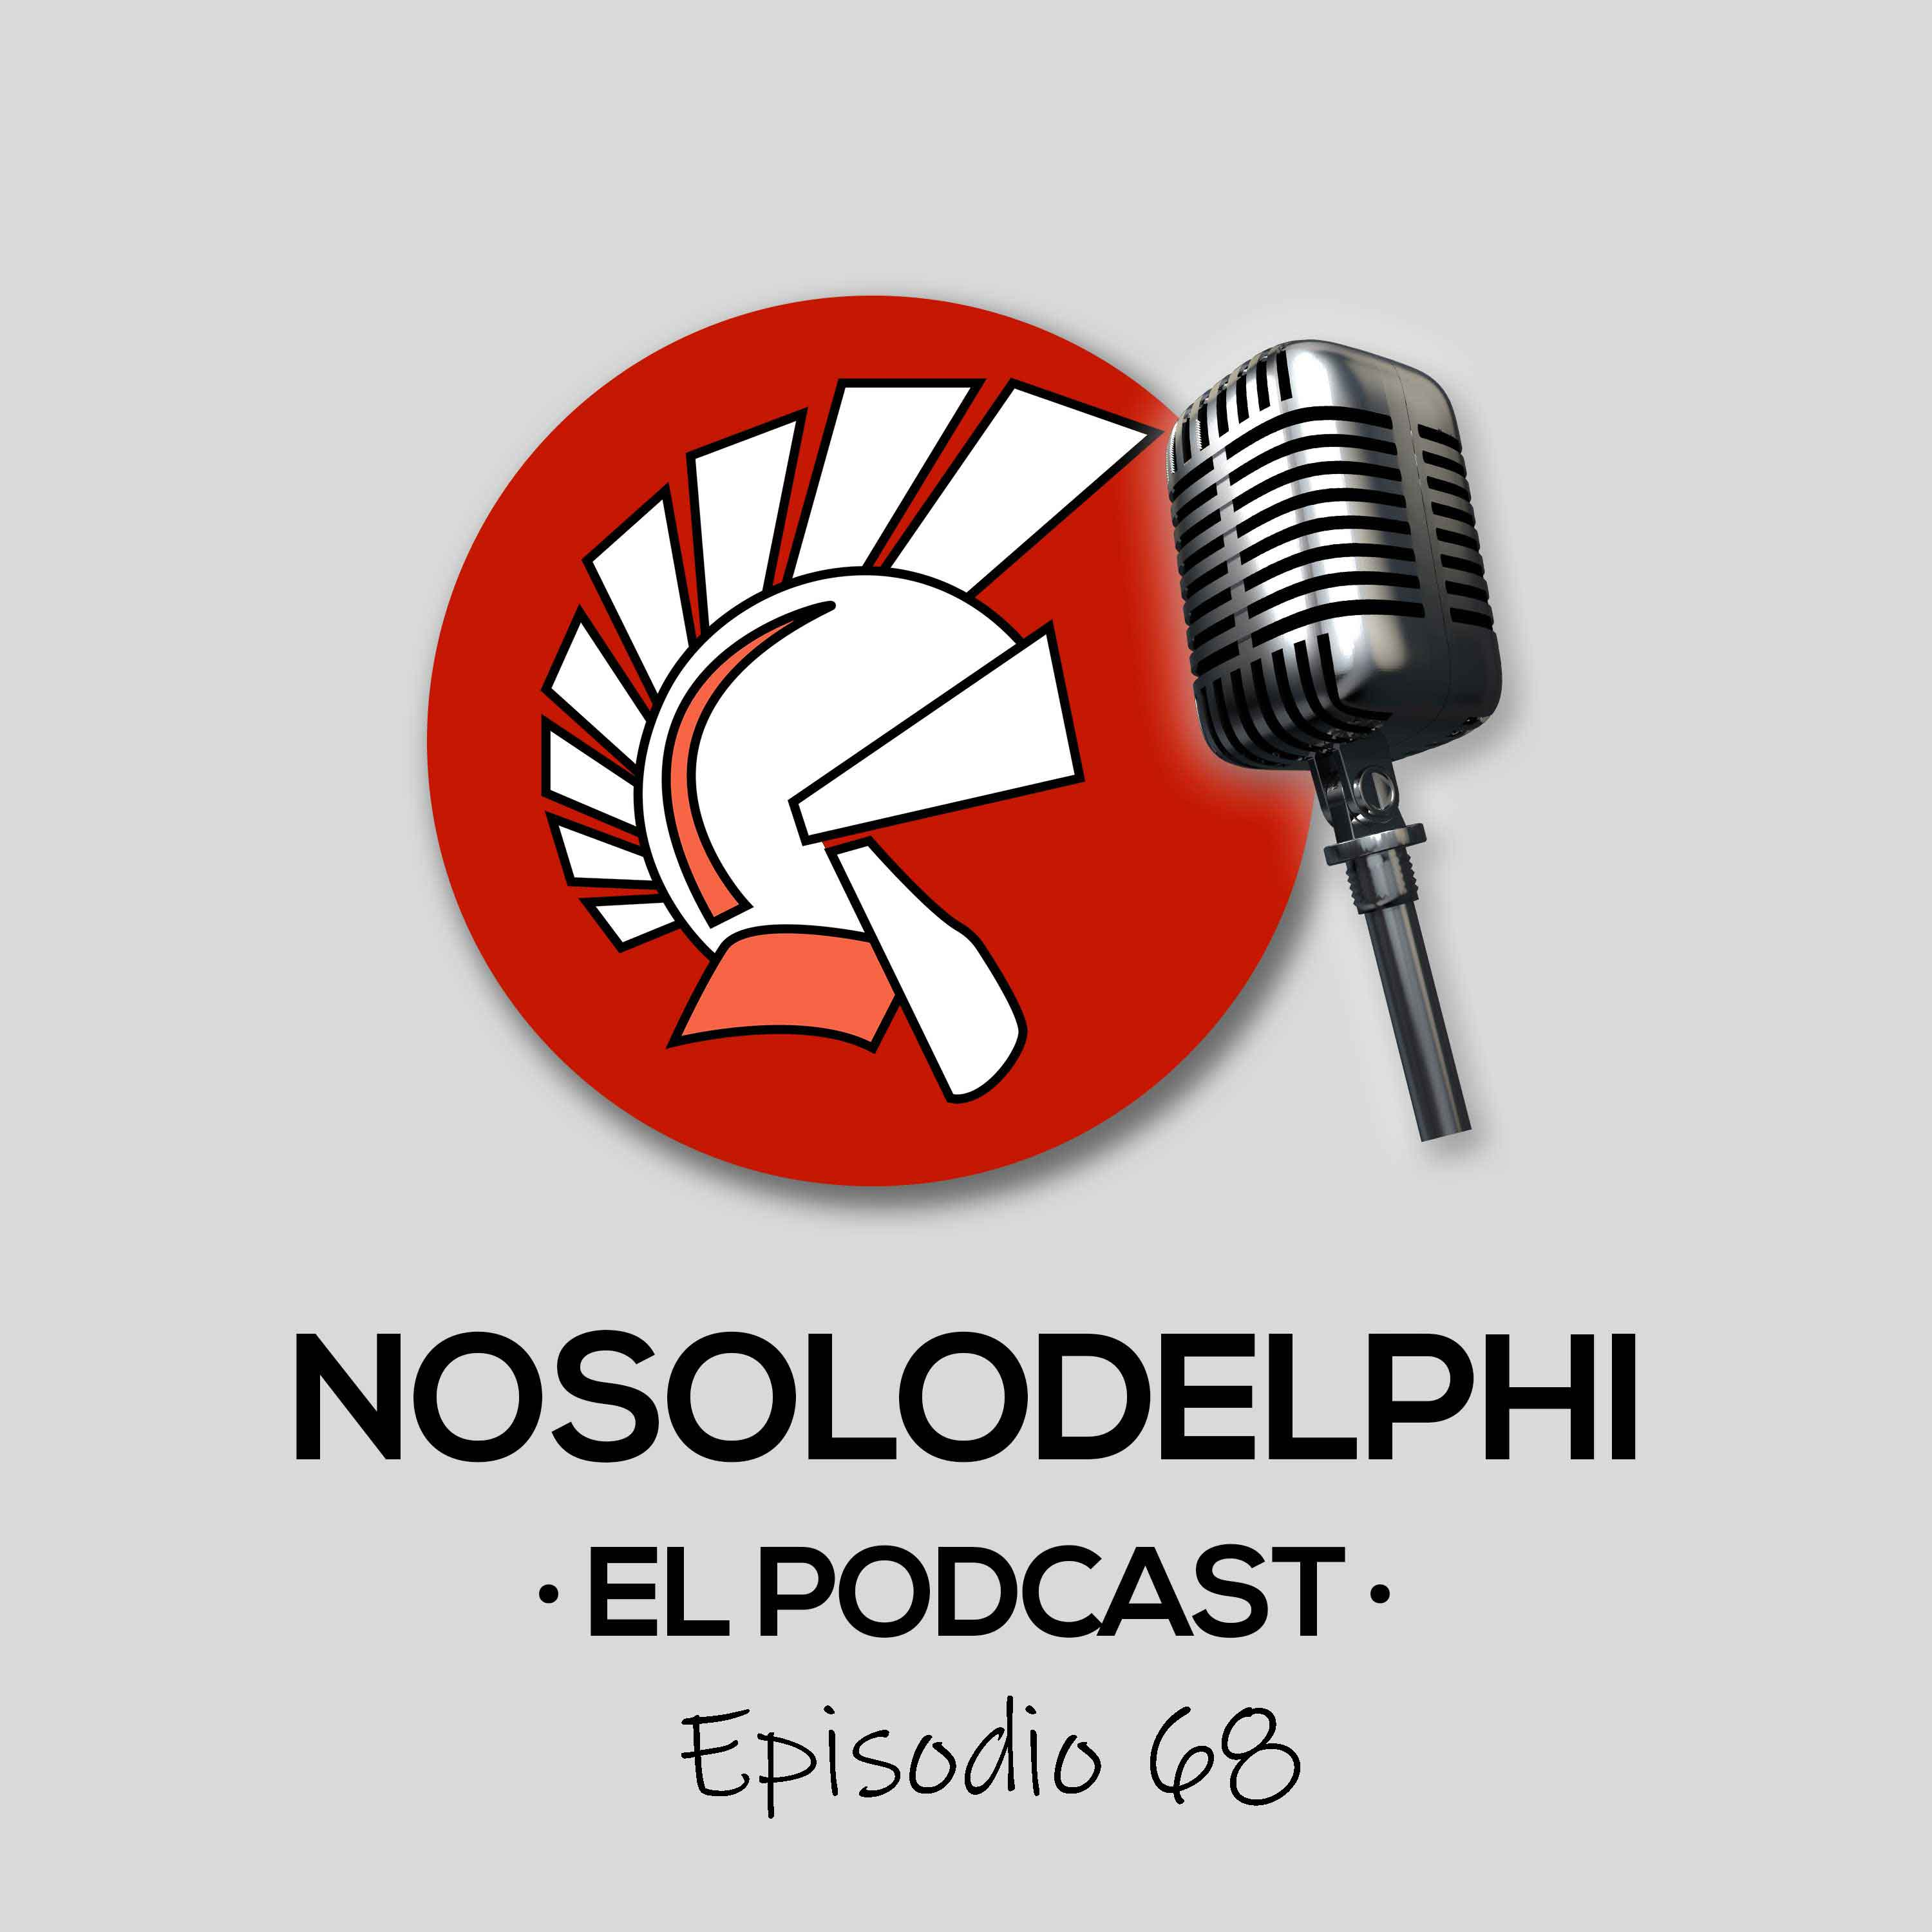 Podcast 68 de No Solo Delphi